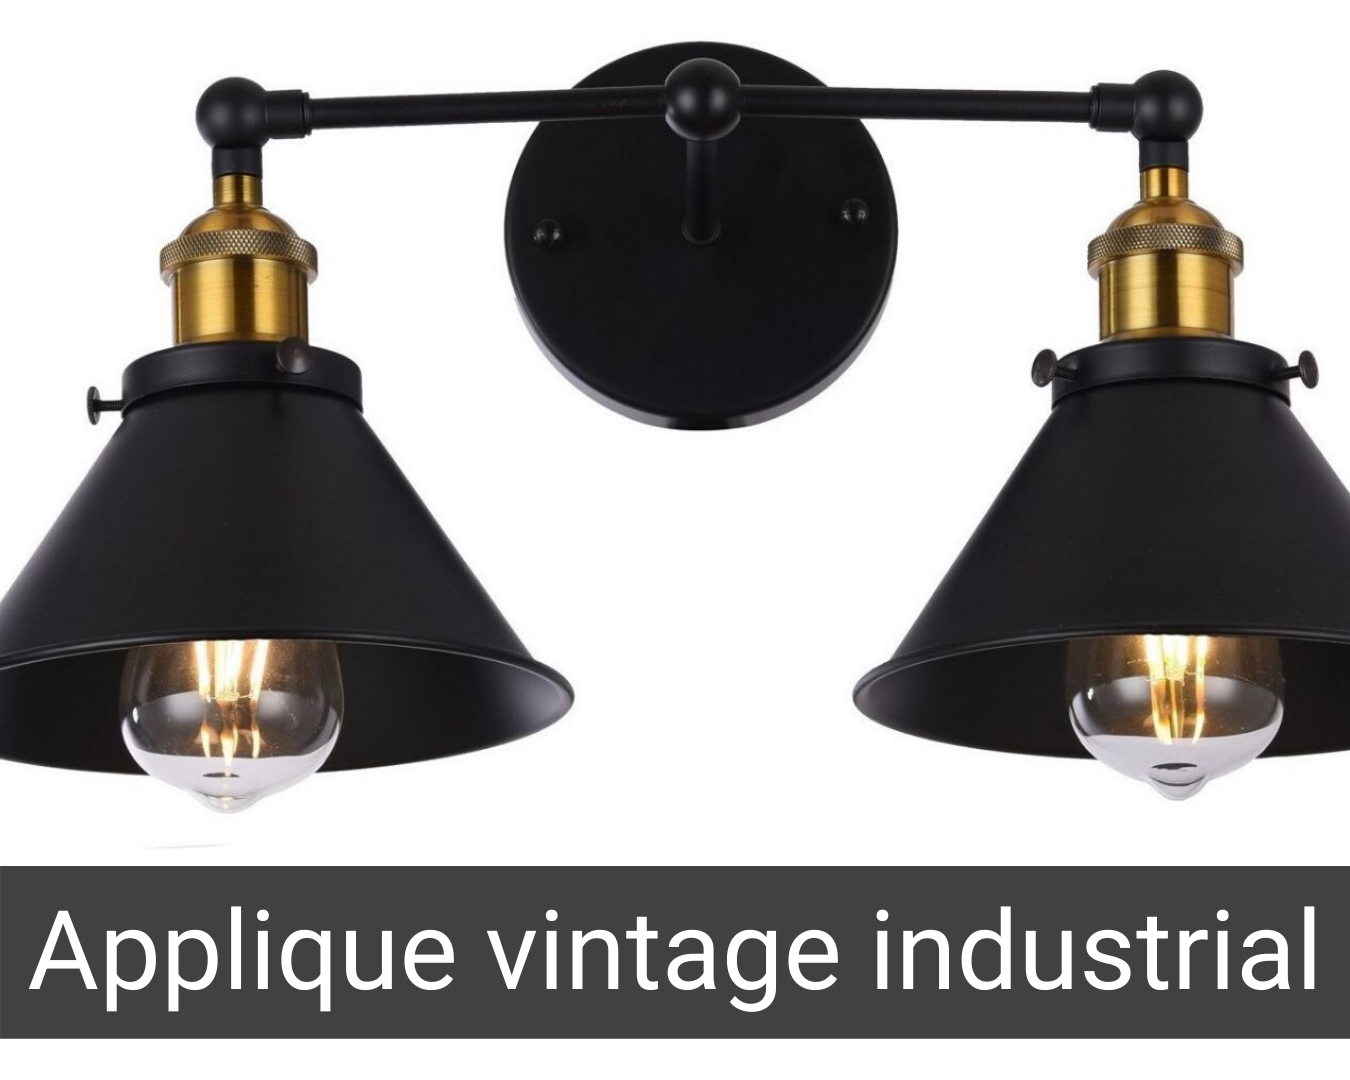 applique stile industriale